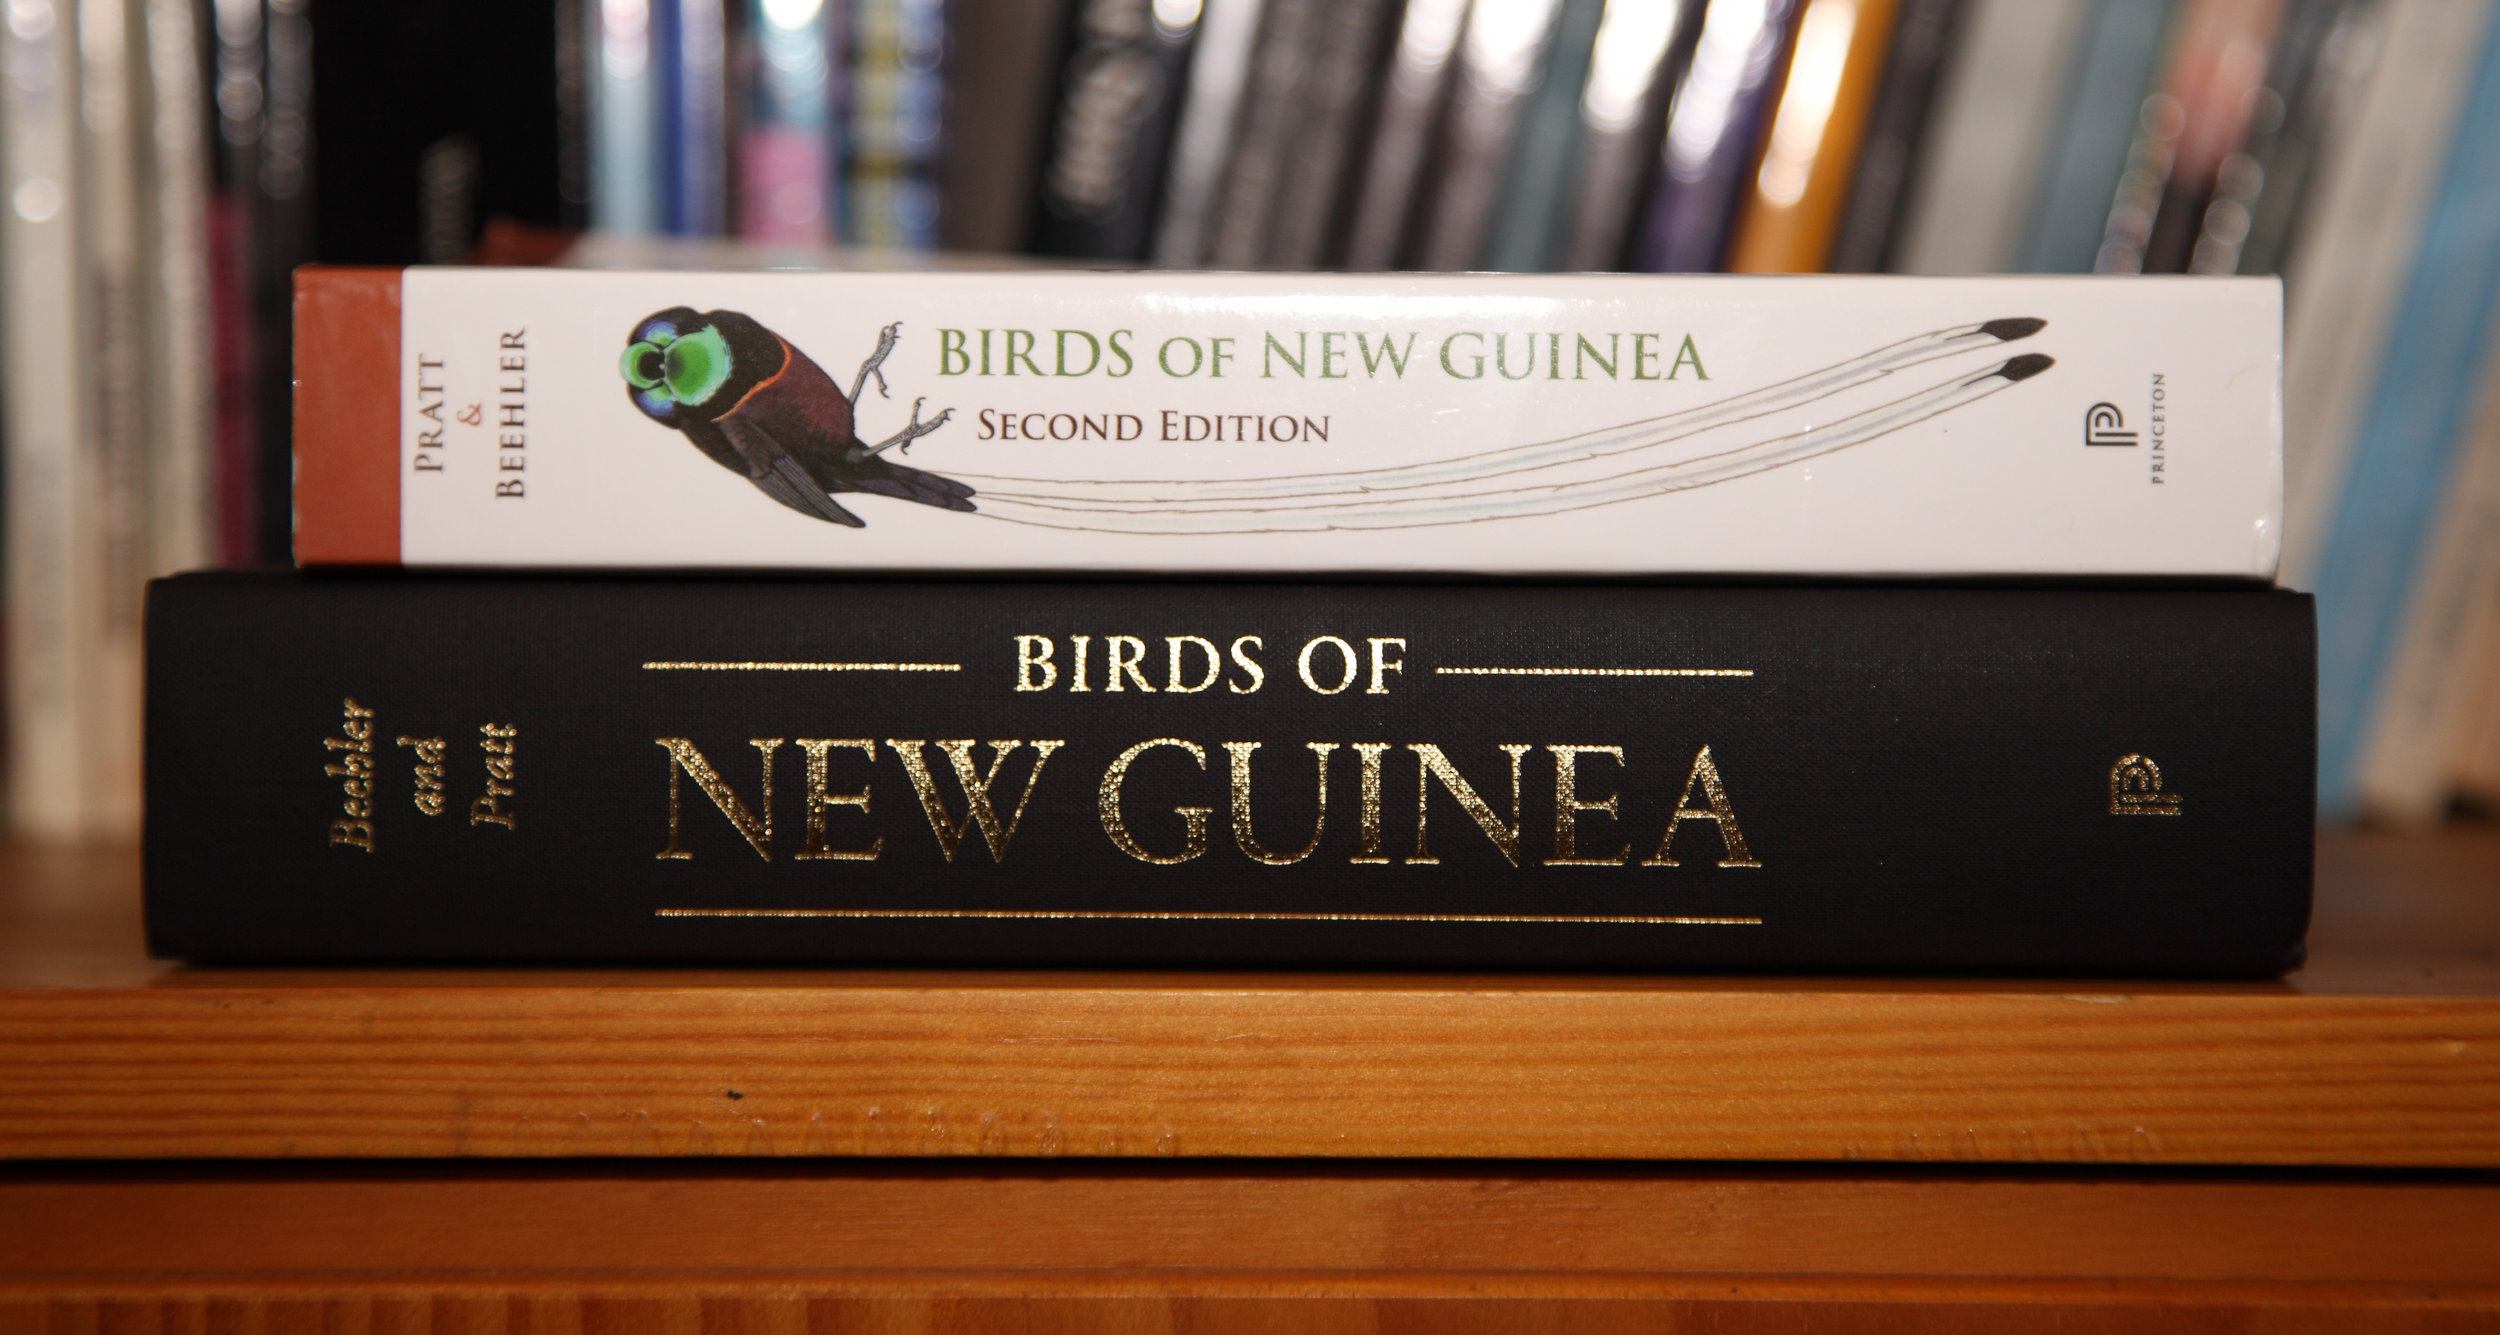 Birds of New Guinea DTS (bottom) with its dust jacket off.